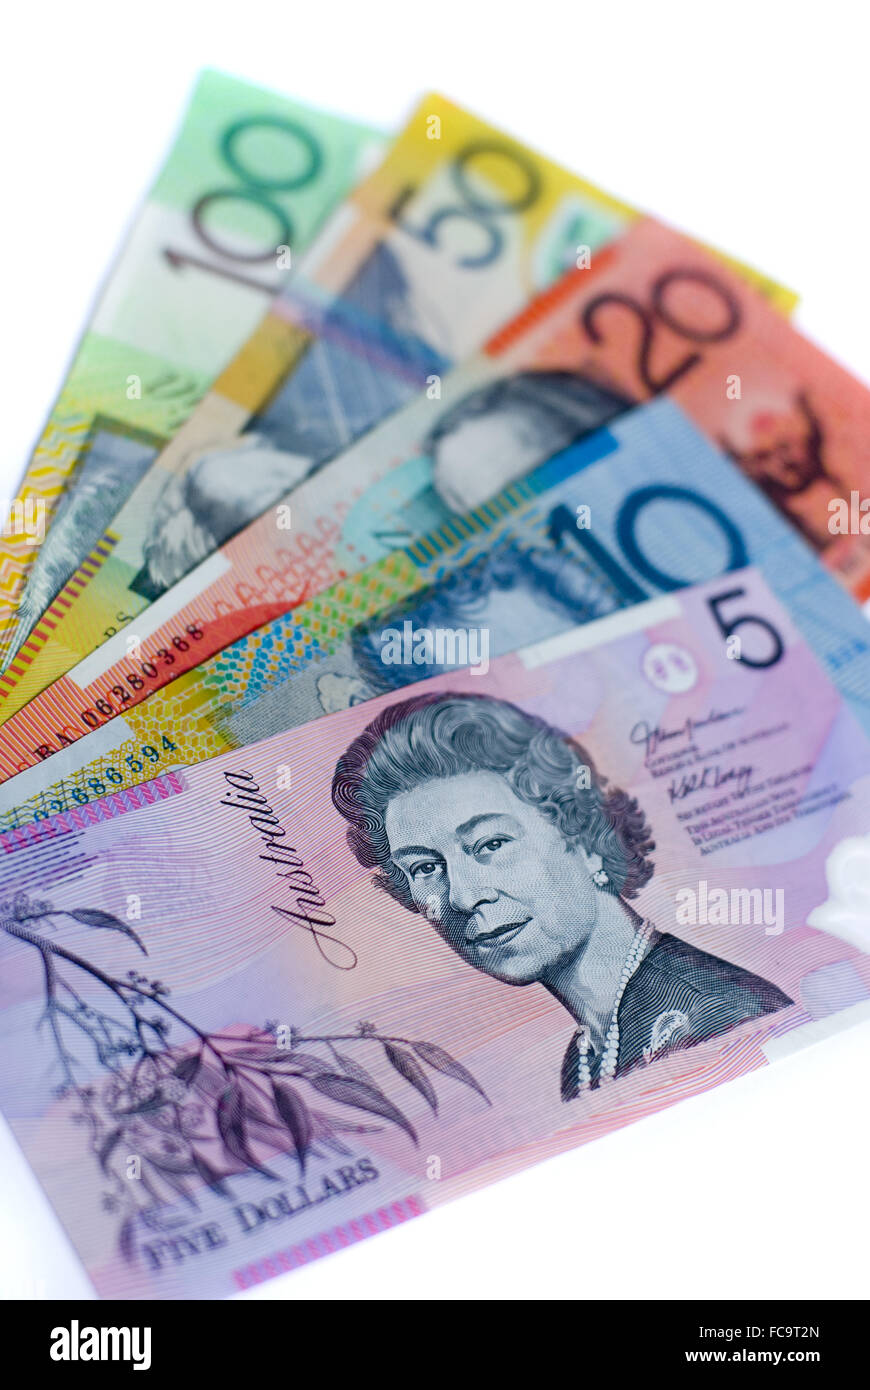 aussie cash - Stock Image